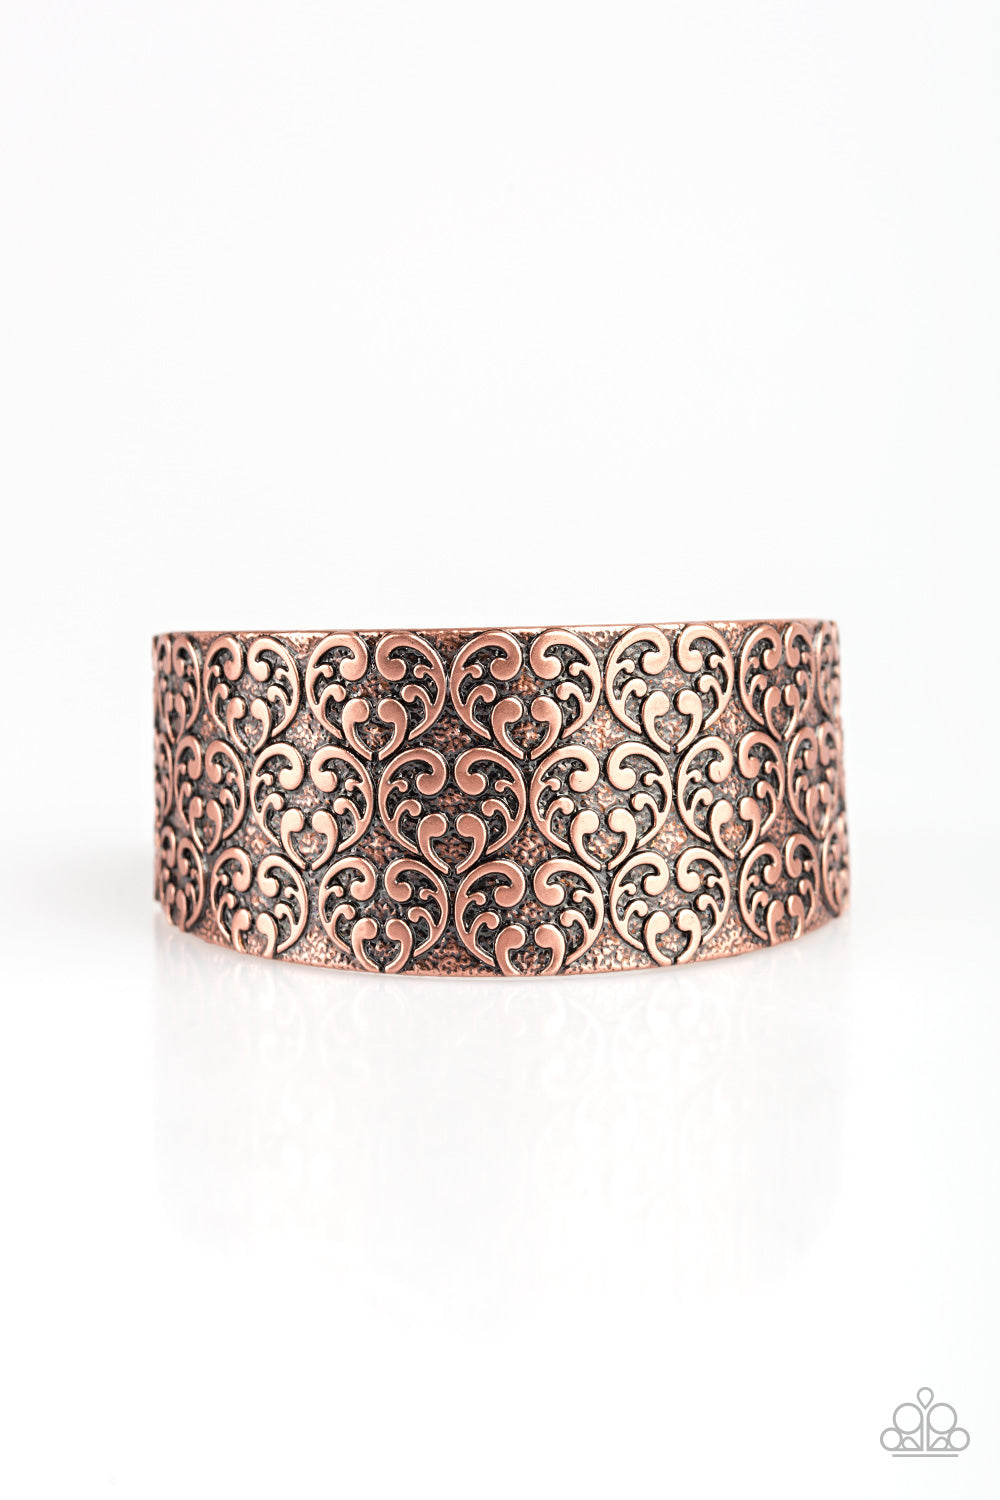 Paparazzi Accessories - Eat Your Heart Out | Vintage Copper | Heart Paparazzi Bracelet - Bracelets